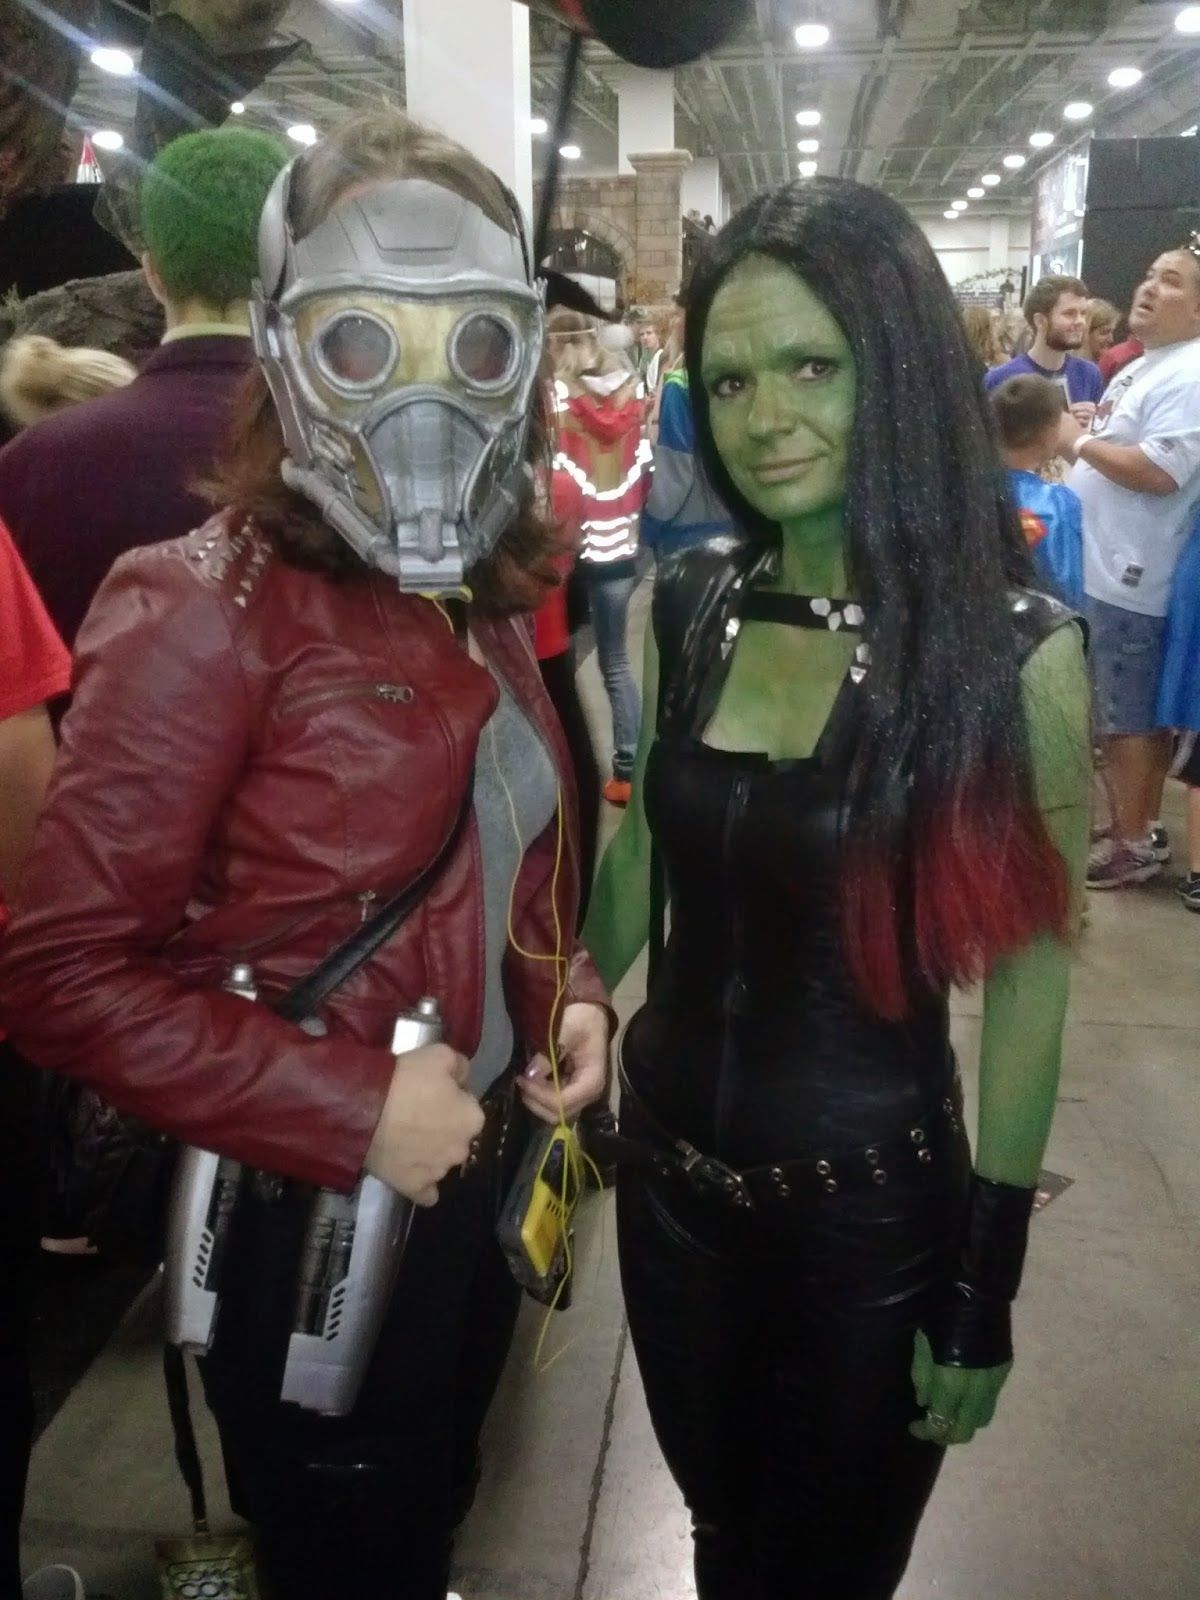 Guardians Of The Galaxy Couples Costume Couples Costumes Halloween Costumes Halloween 2019